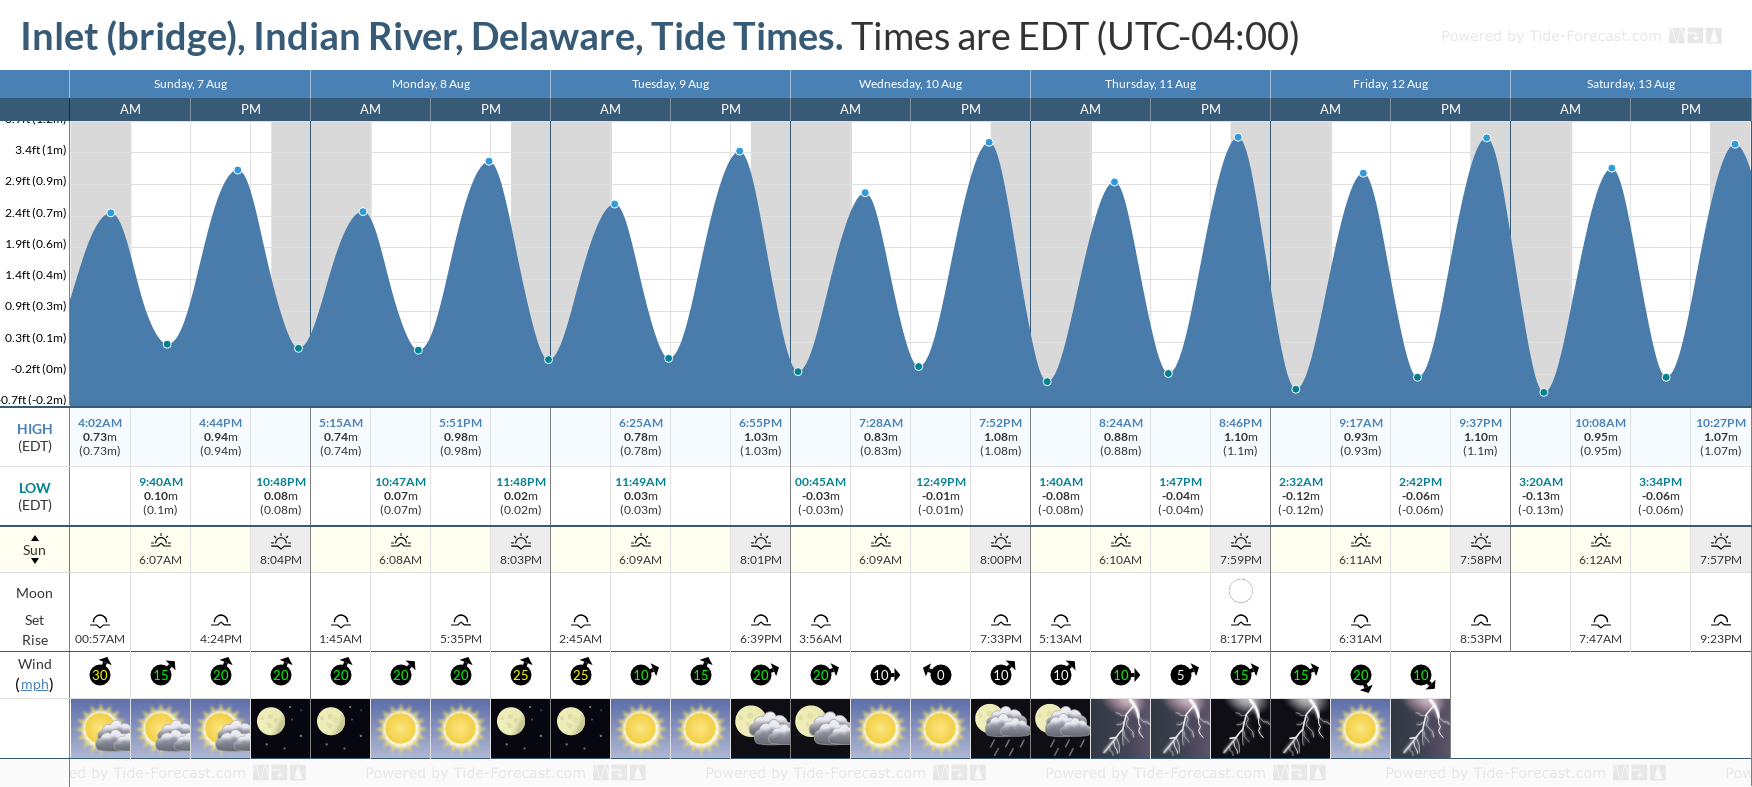 Inlet (bridge), Indian River, Delaware Tide Chart including high and low tide tide times for the next 7 days